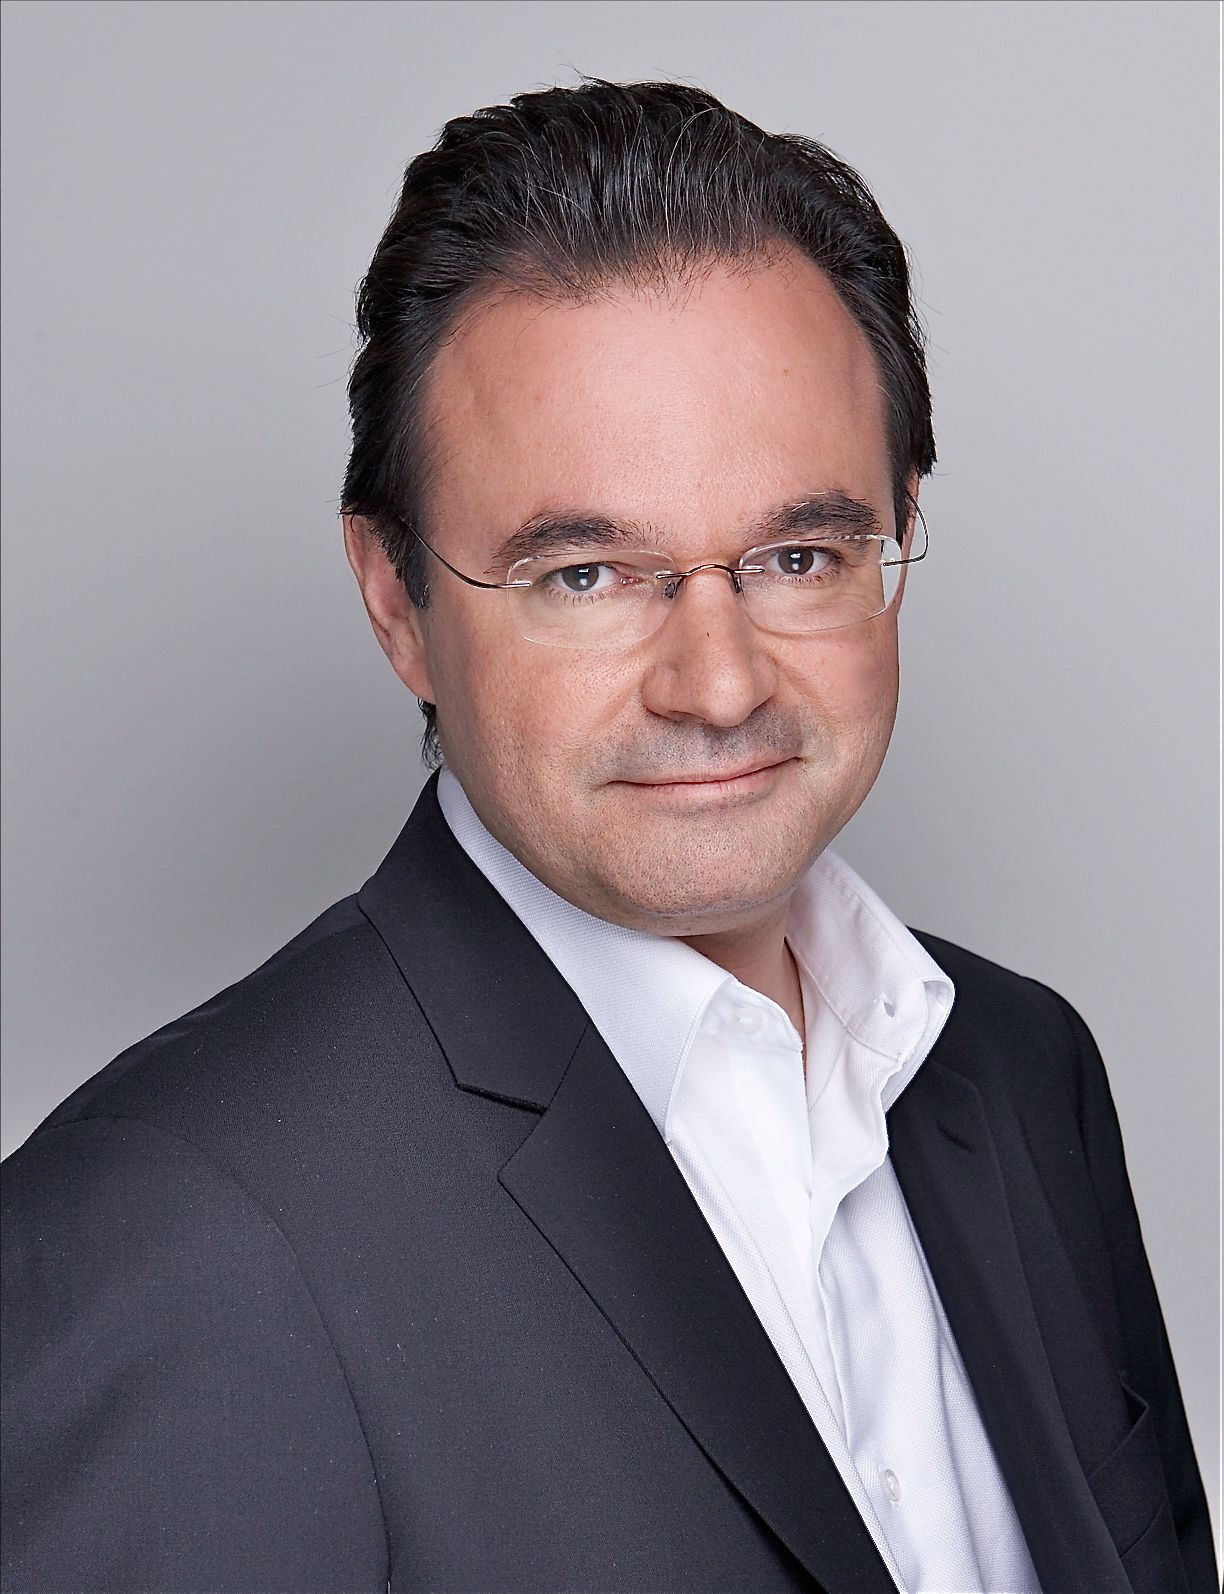 HE Minister, Prof. Dr. George Papaconstantinou Profile Image